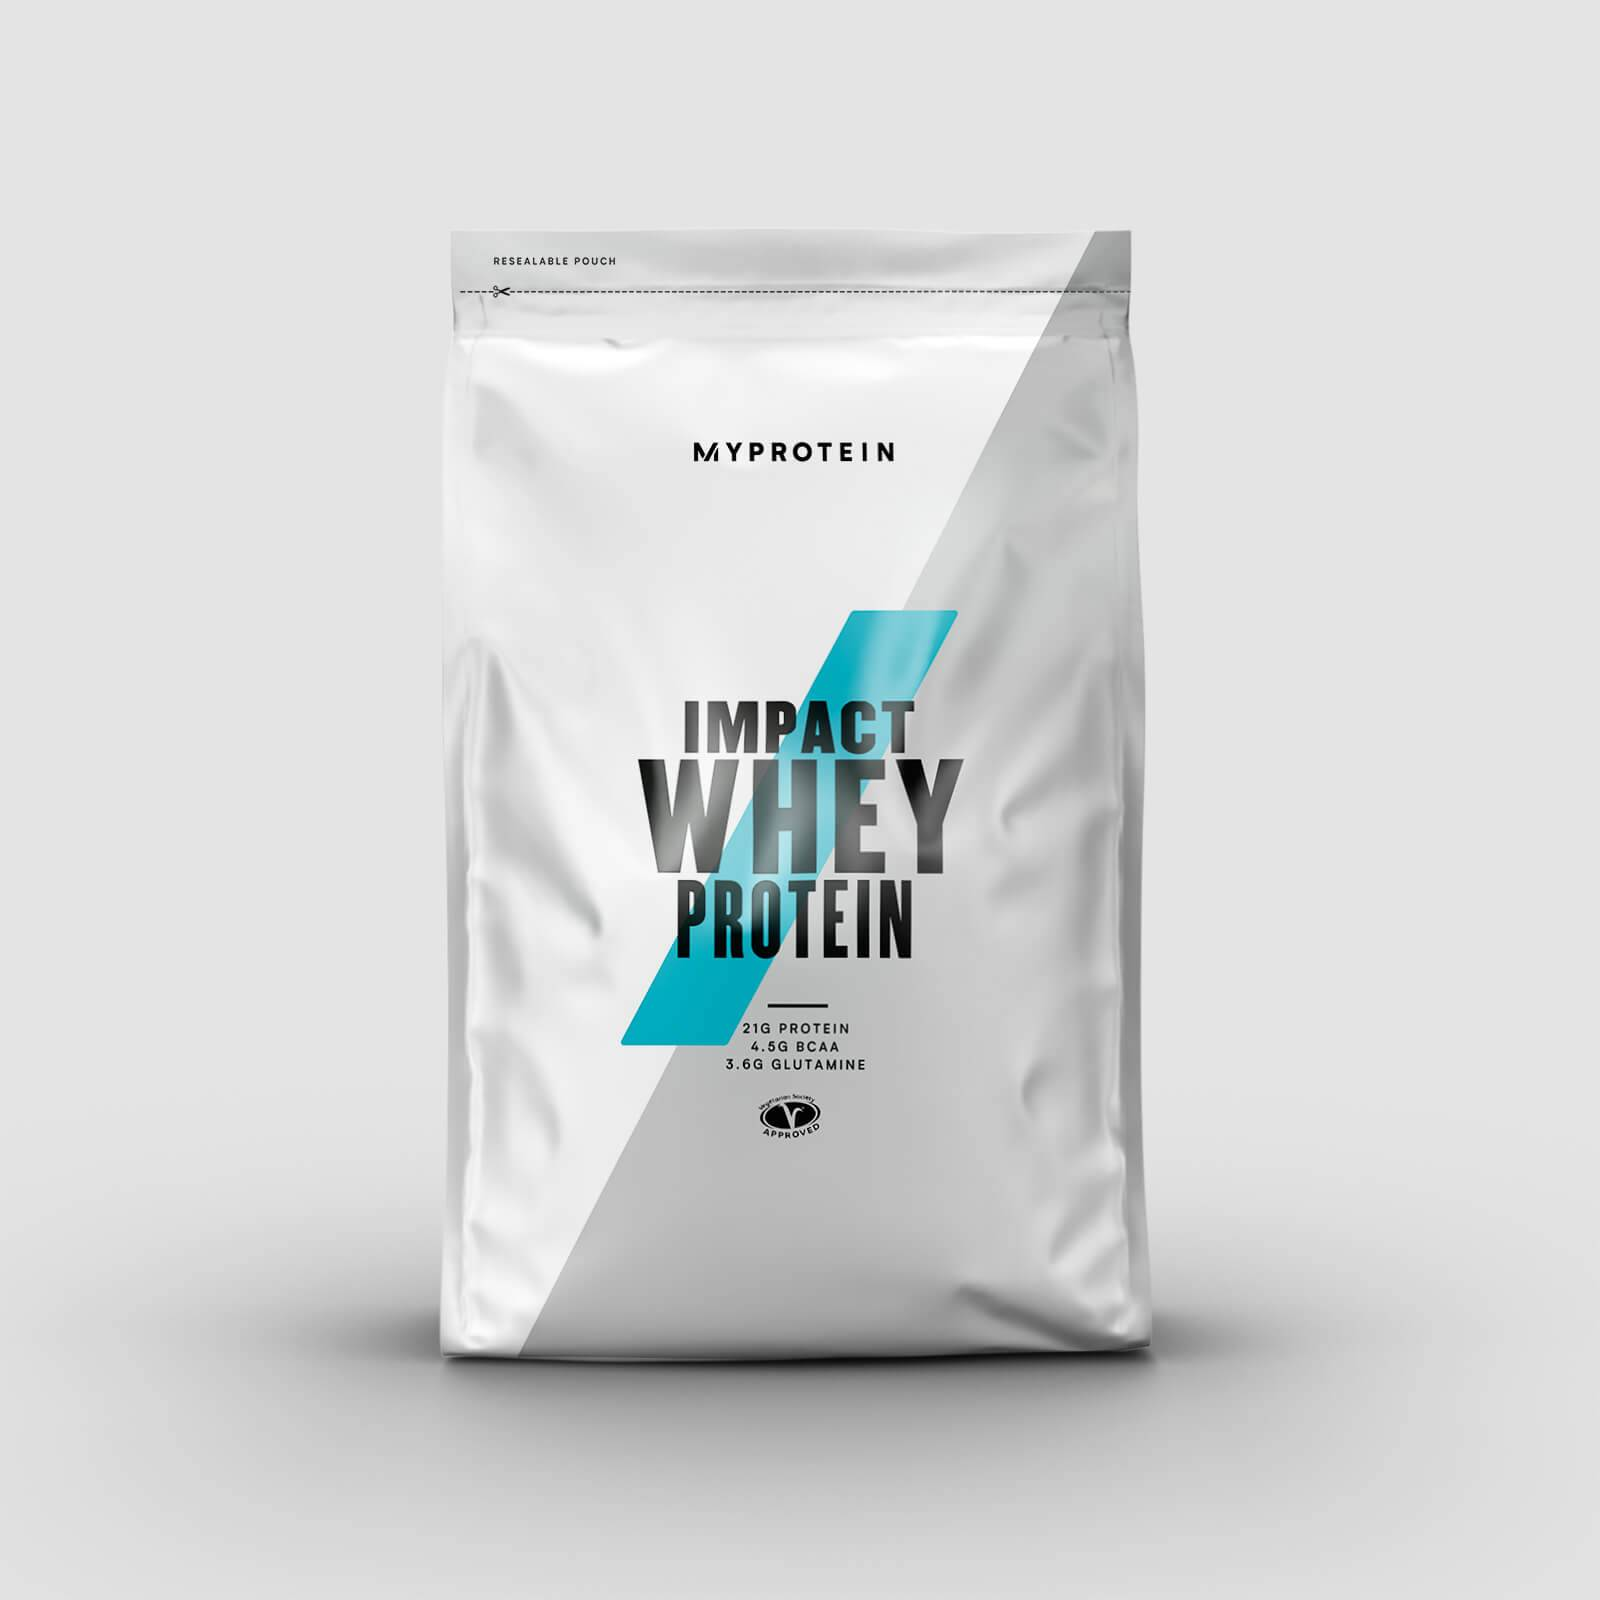 Myprotein Impact Whey Protein - 1kg - Stevia - Chocolat à la menthe